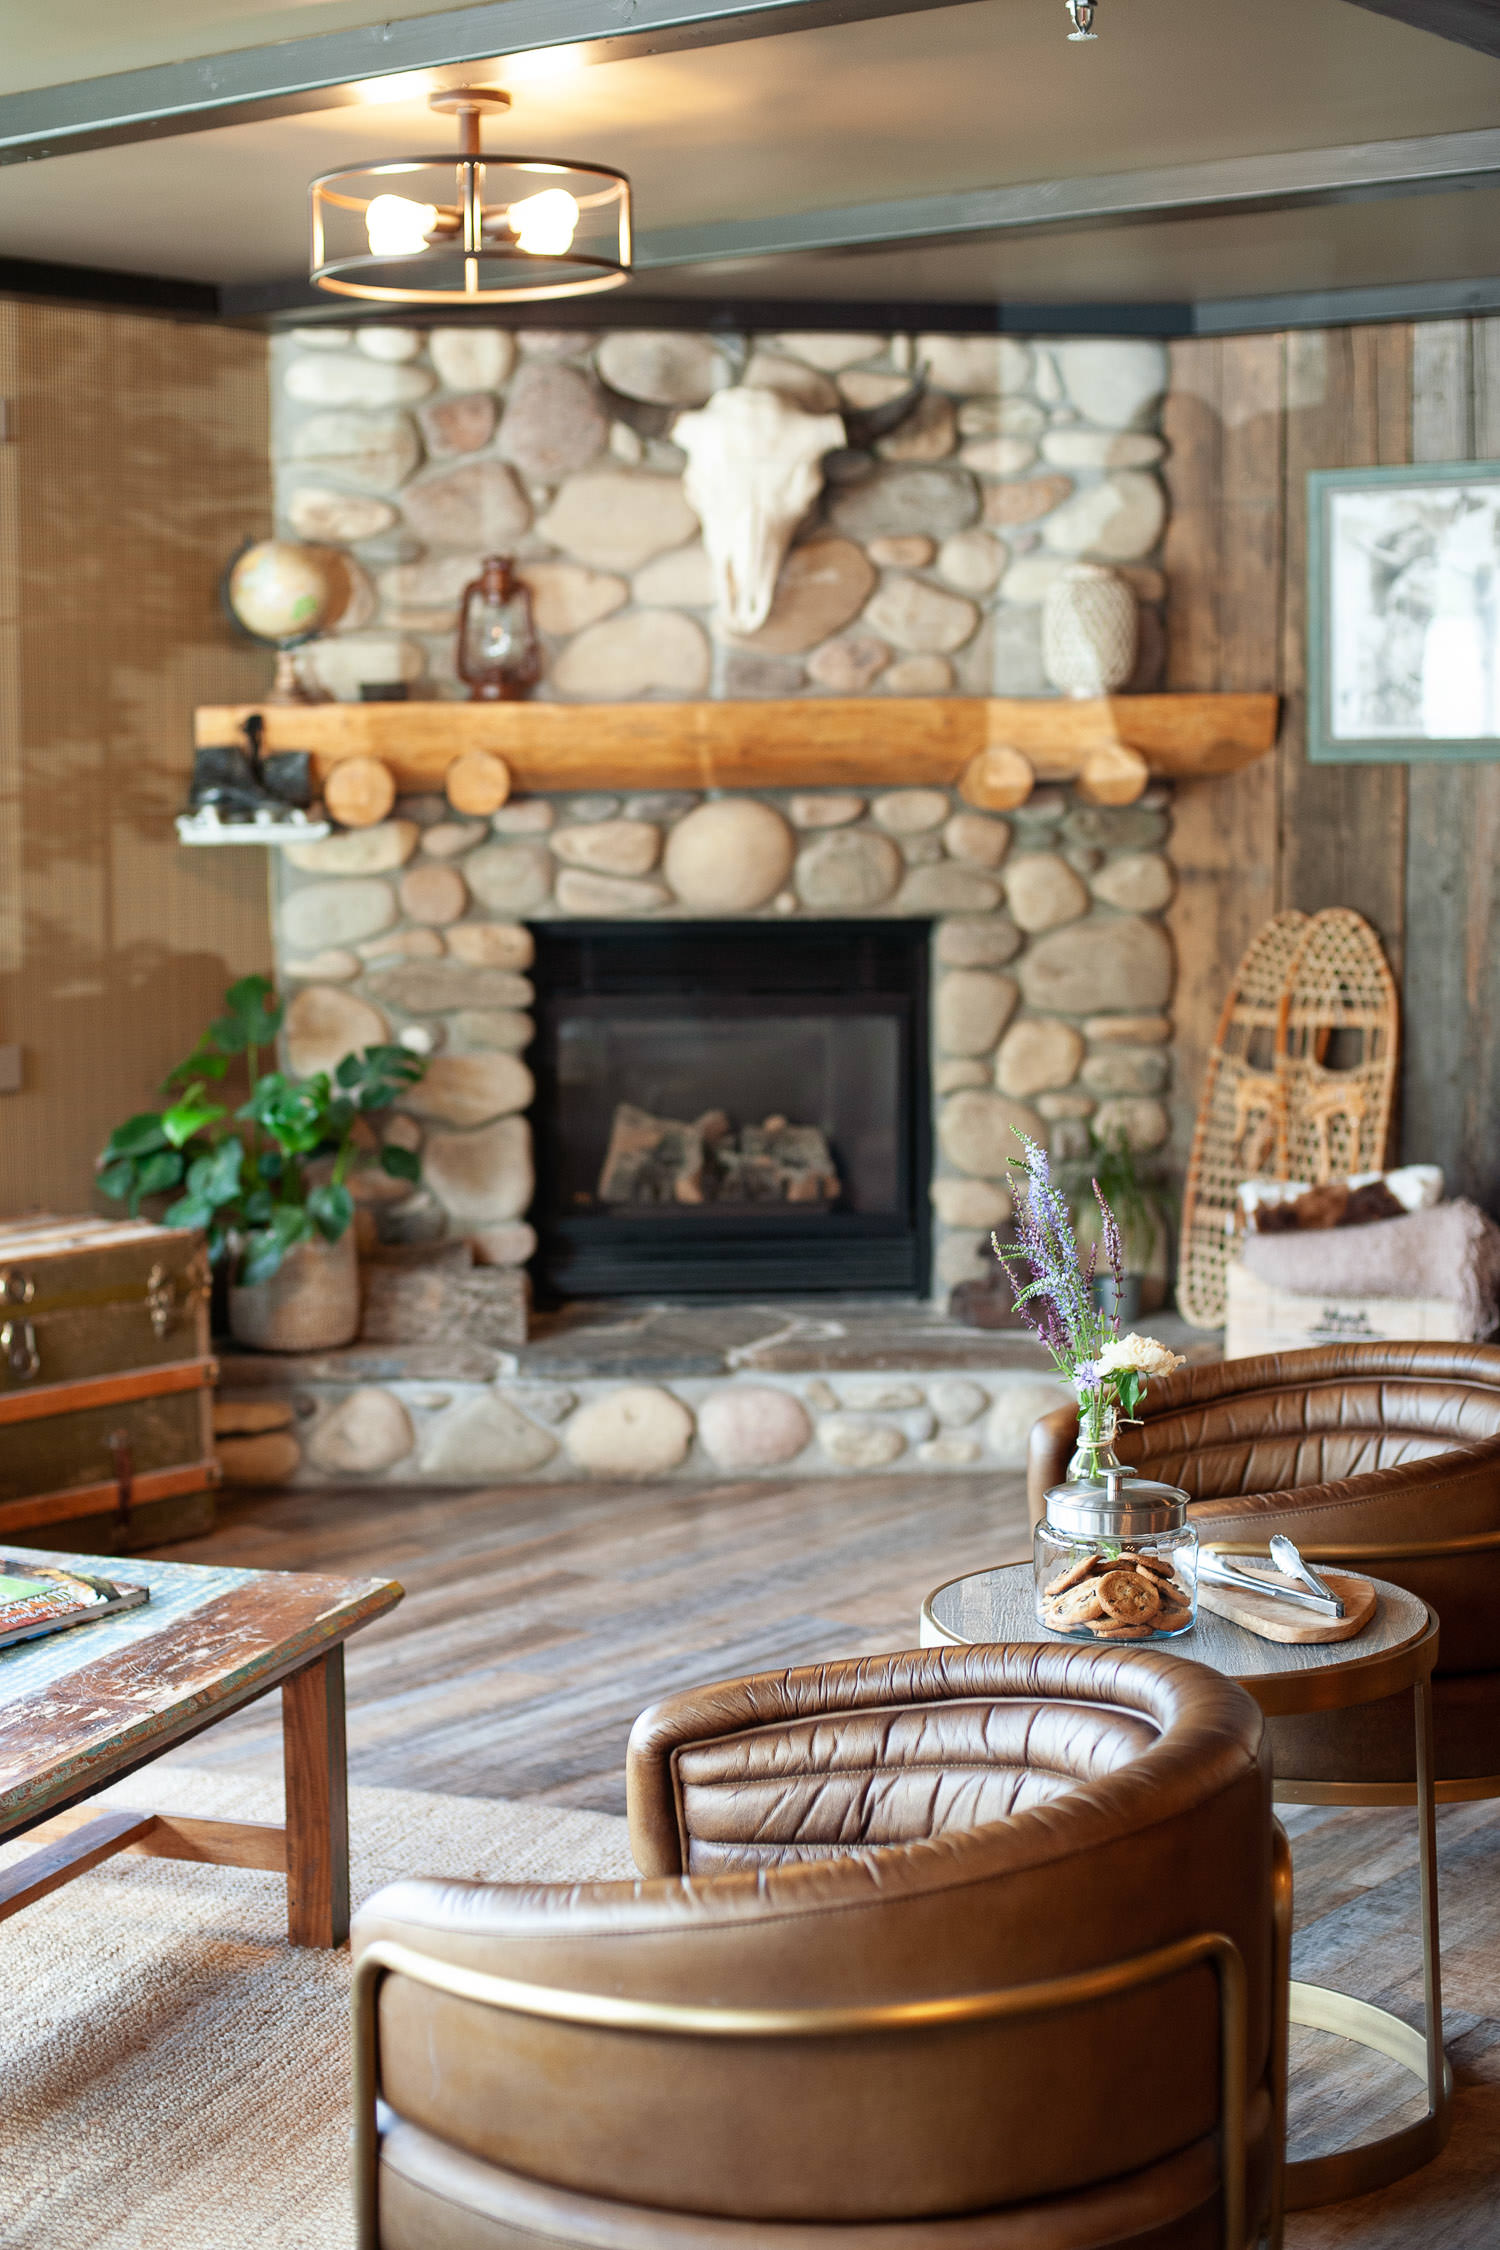 Rustic foyer at Creekside Villa in Canmore captured by Tara Whittaker Photography